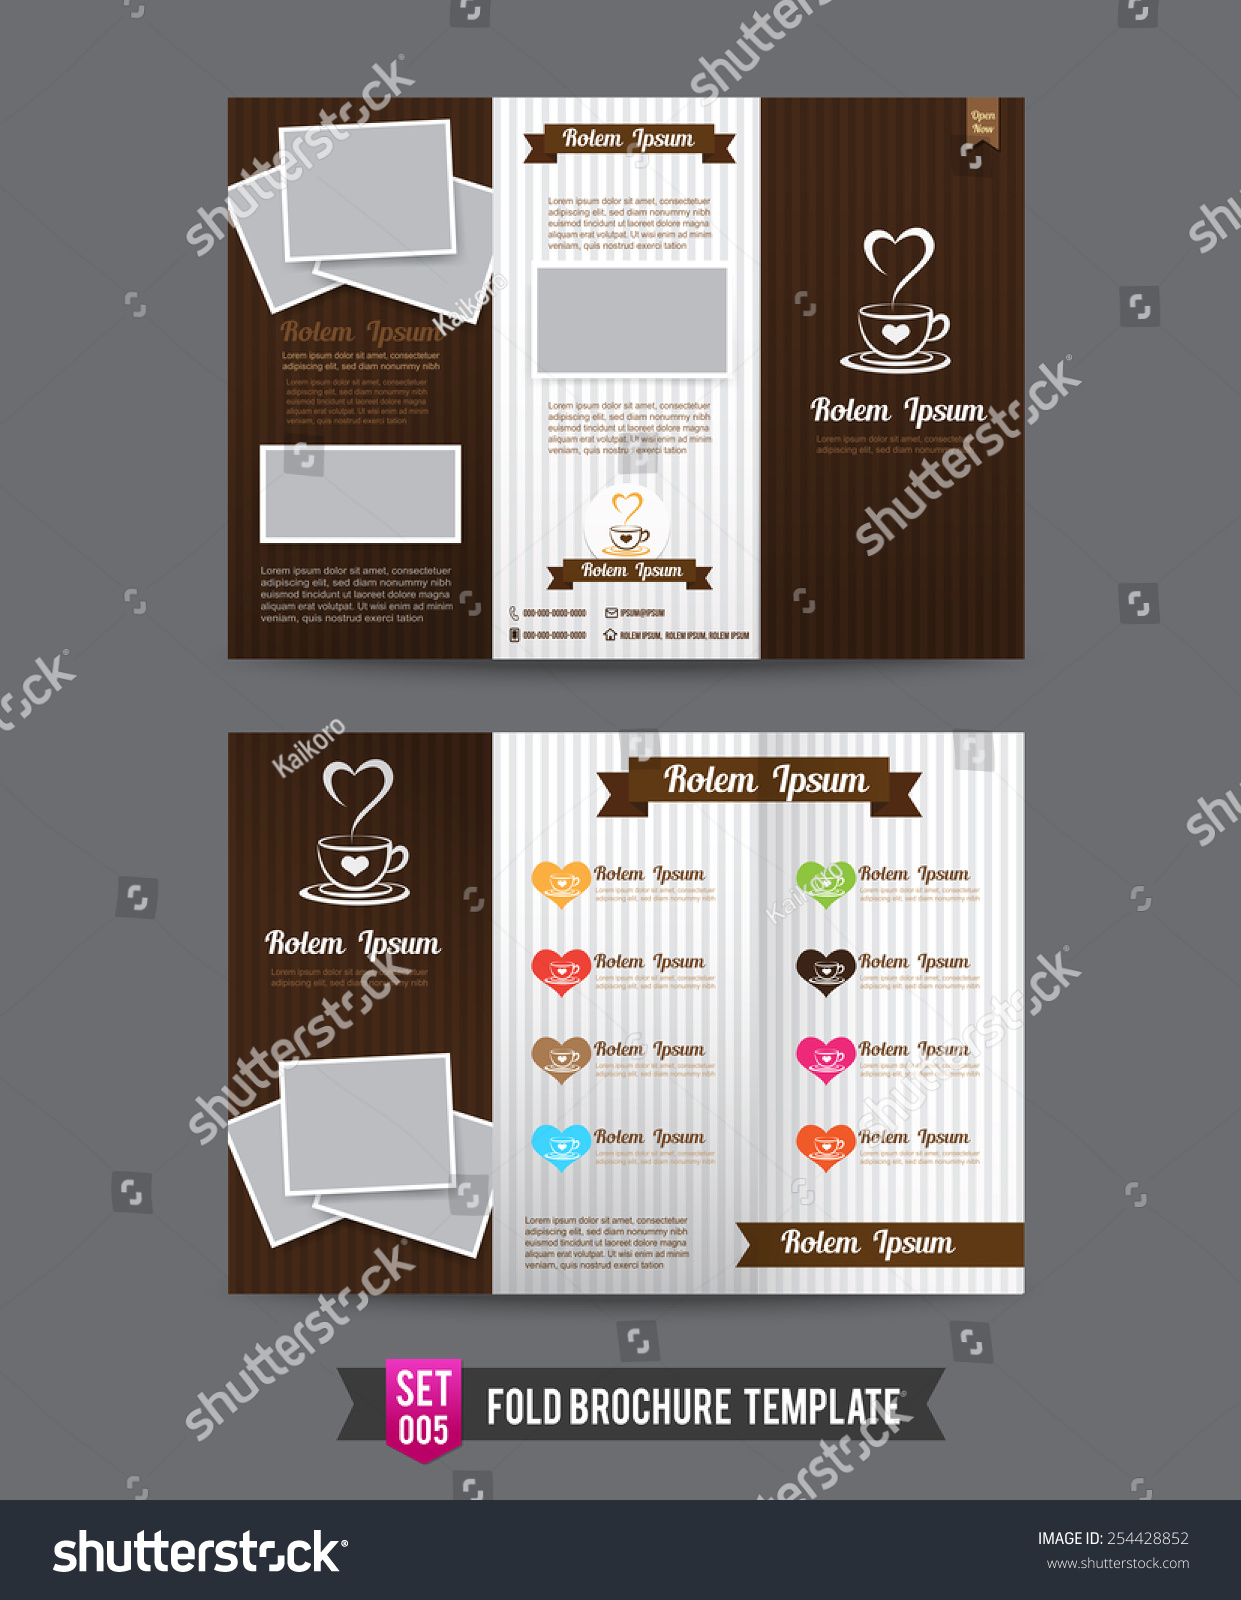 Coffee Shop Red Shop Concept Fold Brochure Template Light Vector  Illustration